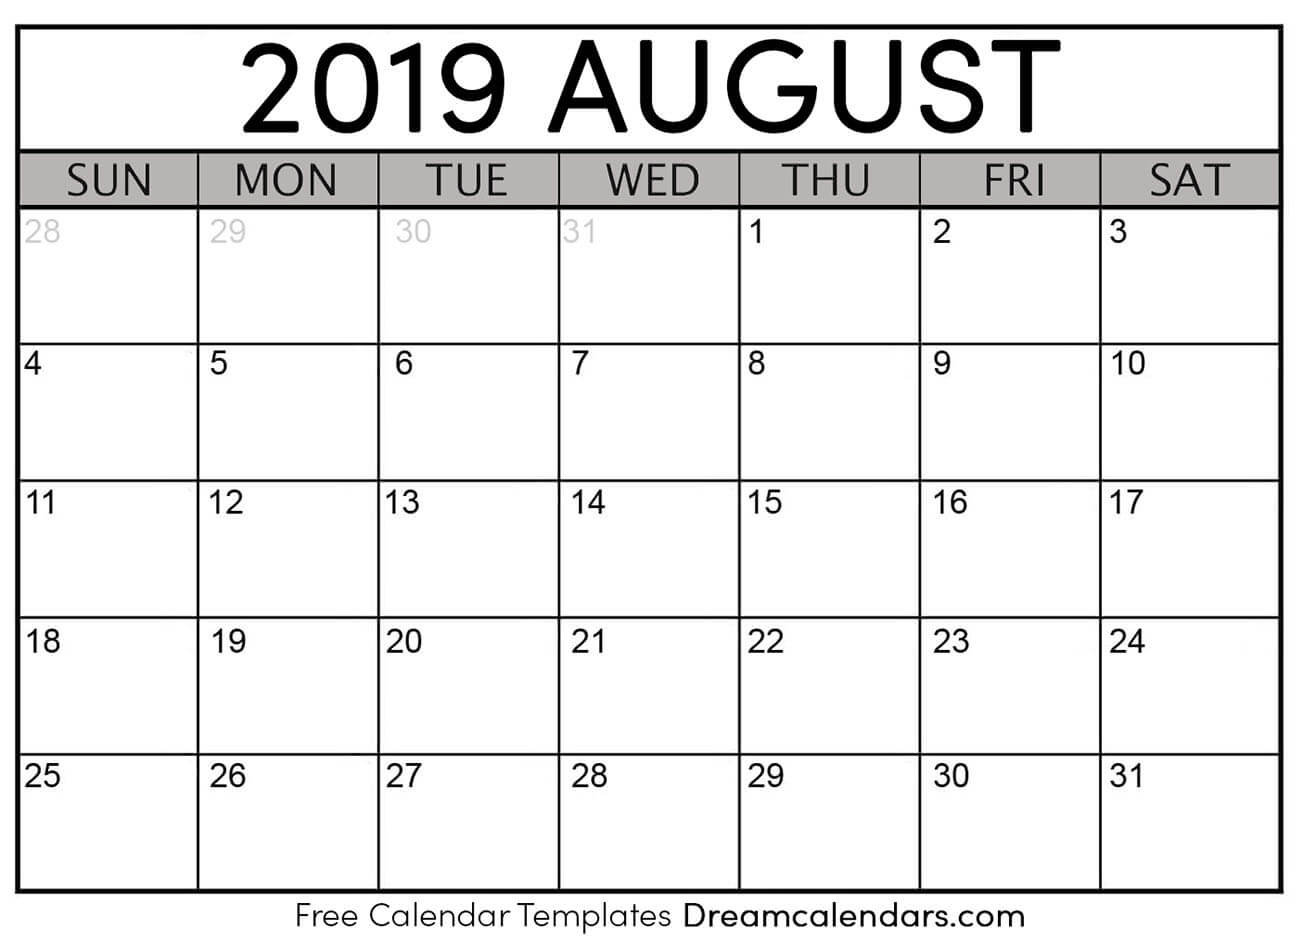 June July August 2019 Calendar Printable.Printable August 2019 Calendar